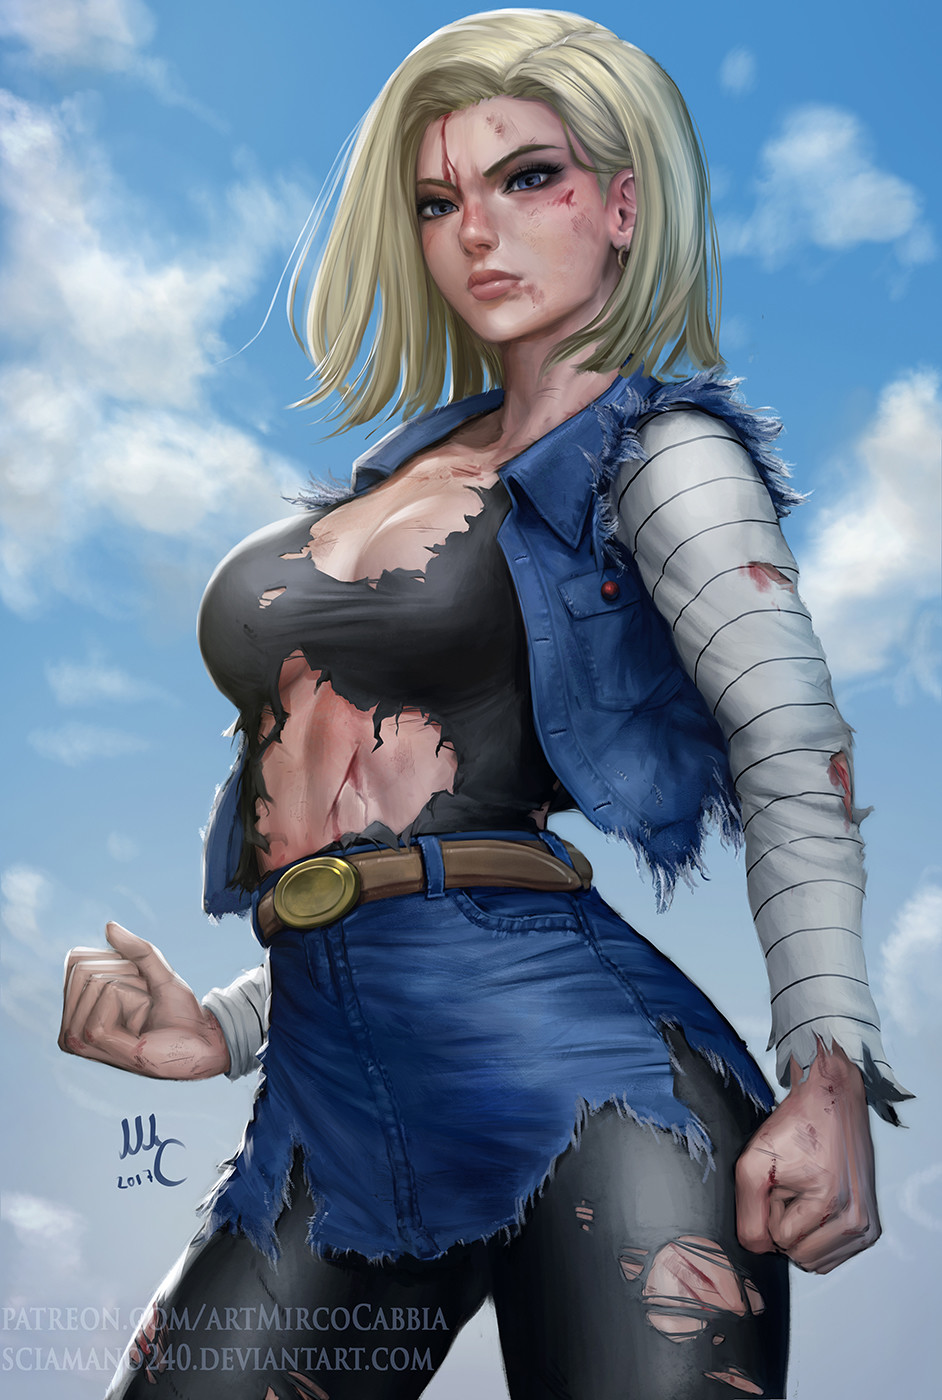 Mirco cabbia android18 finale 3 3